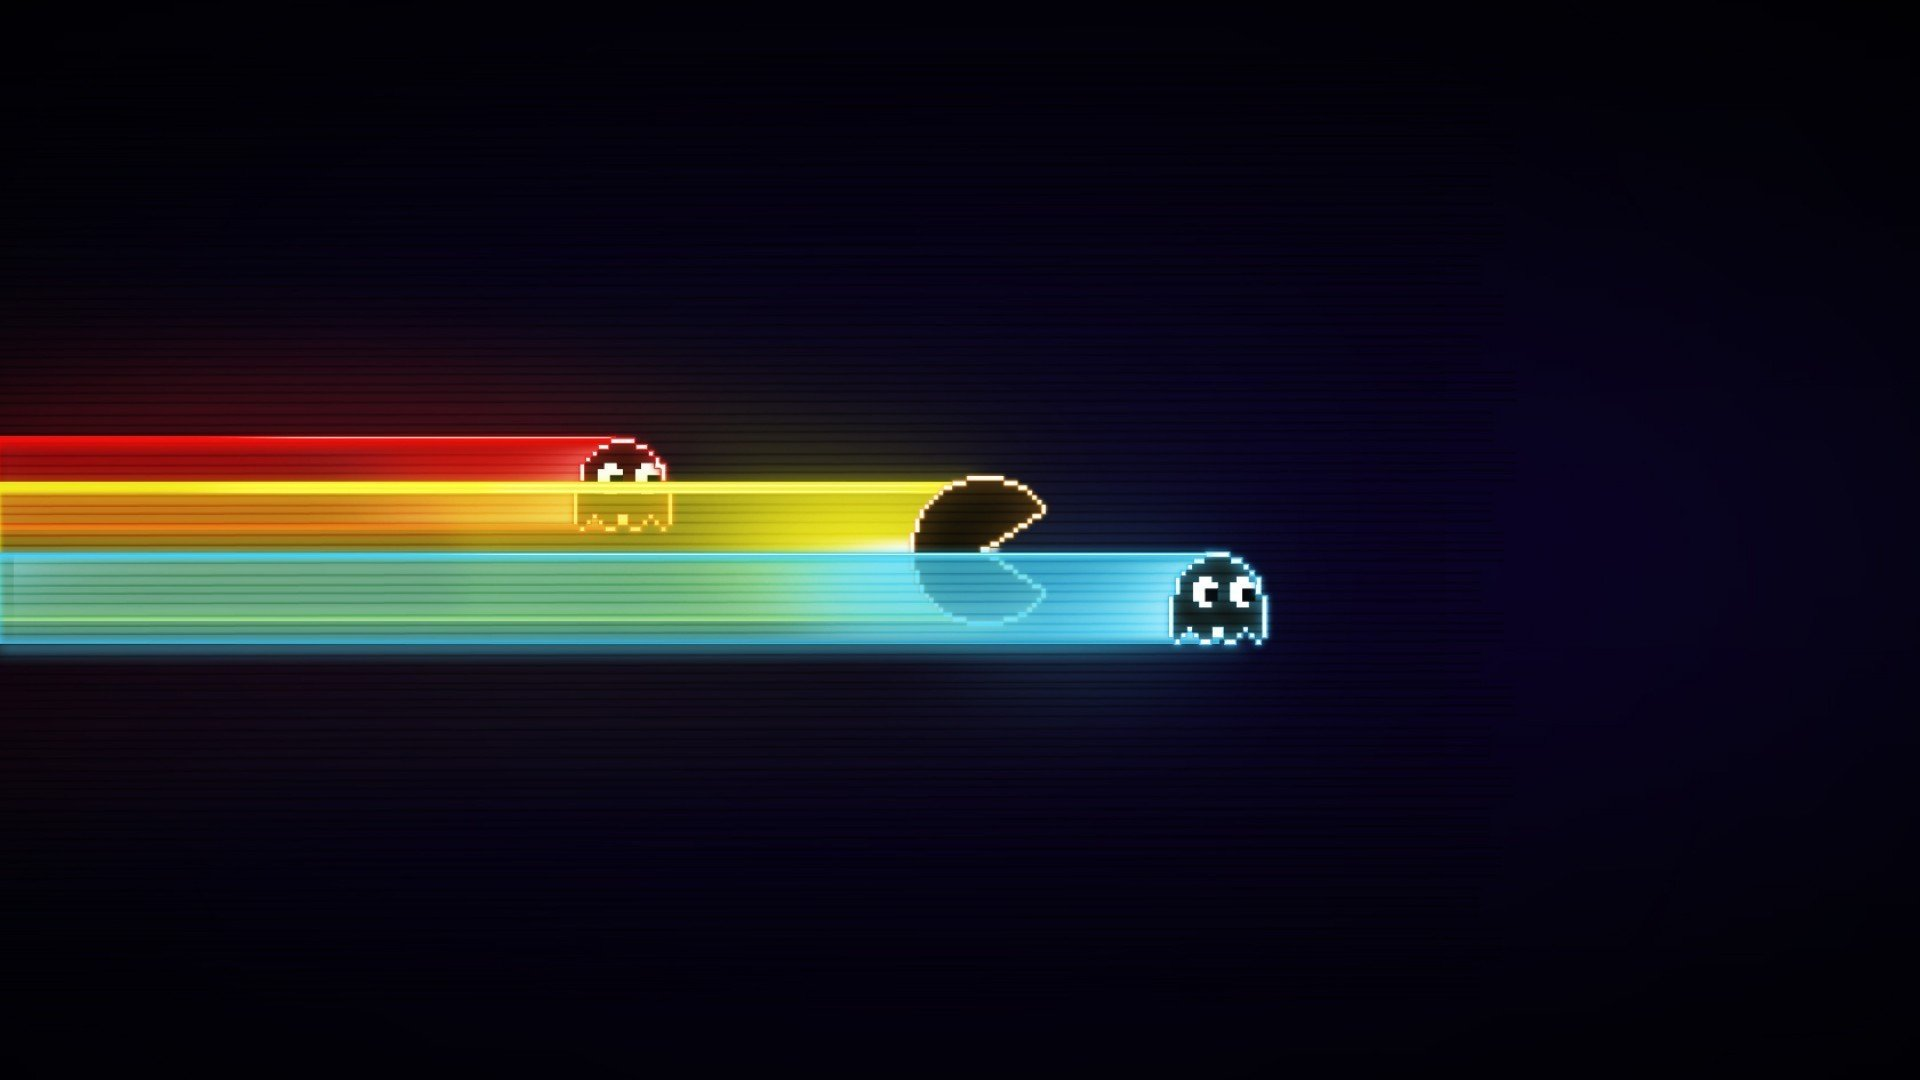 blue, Pacman Wallpaper